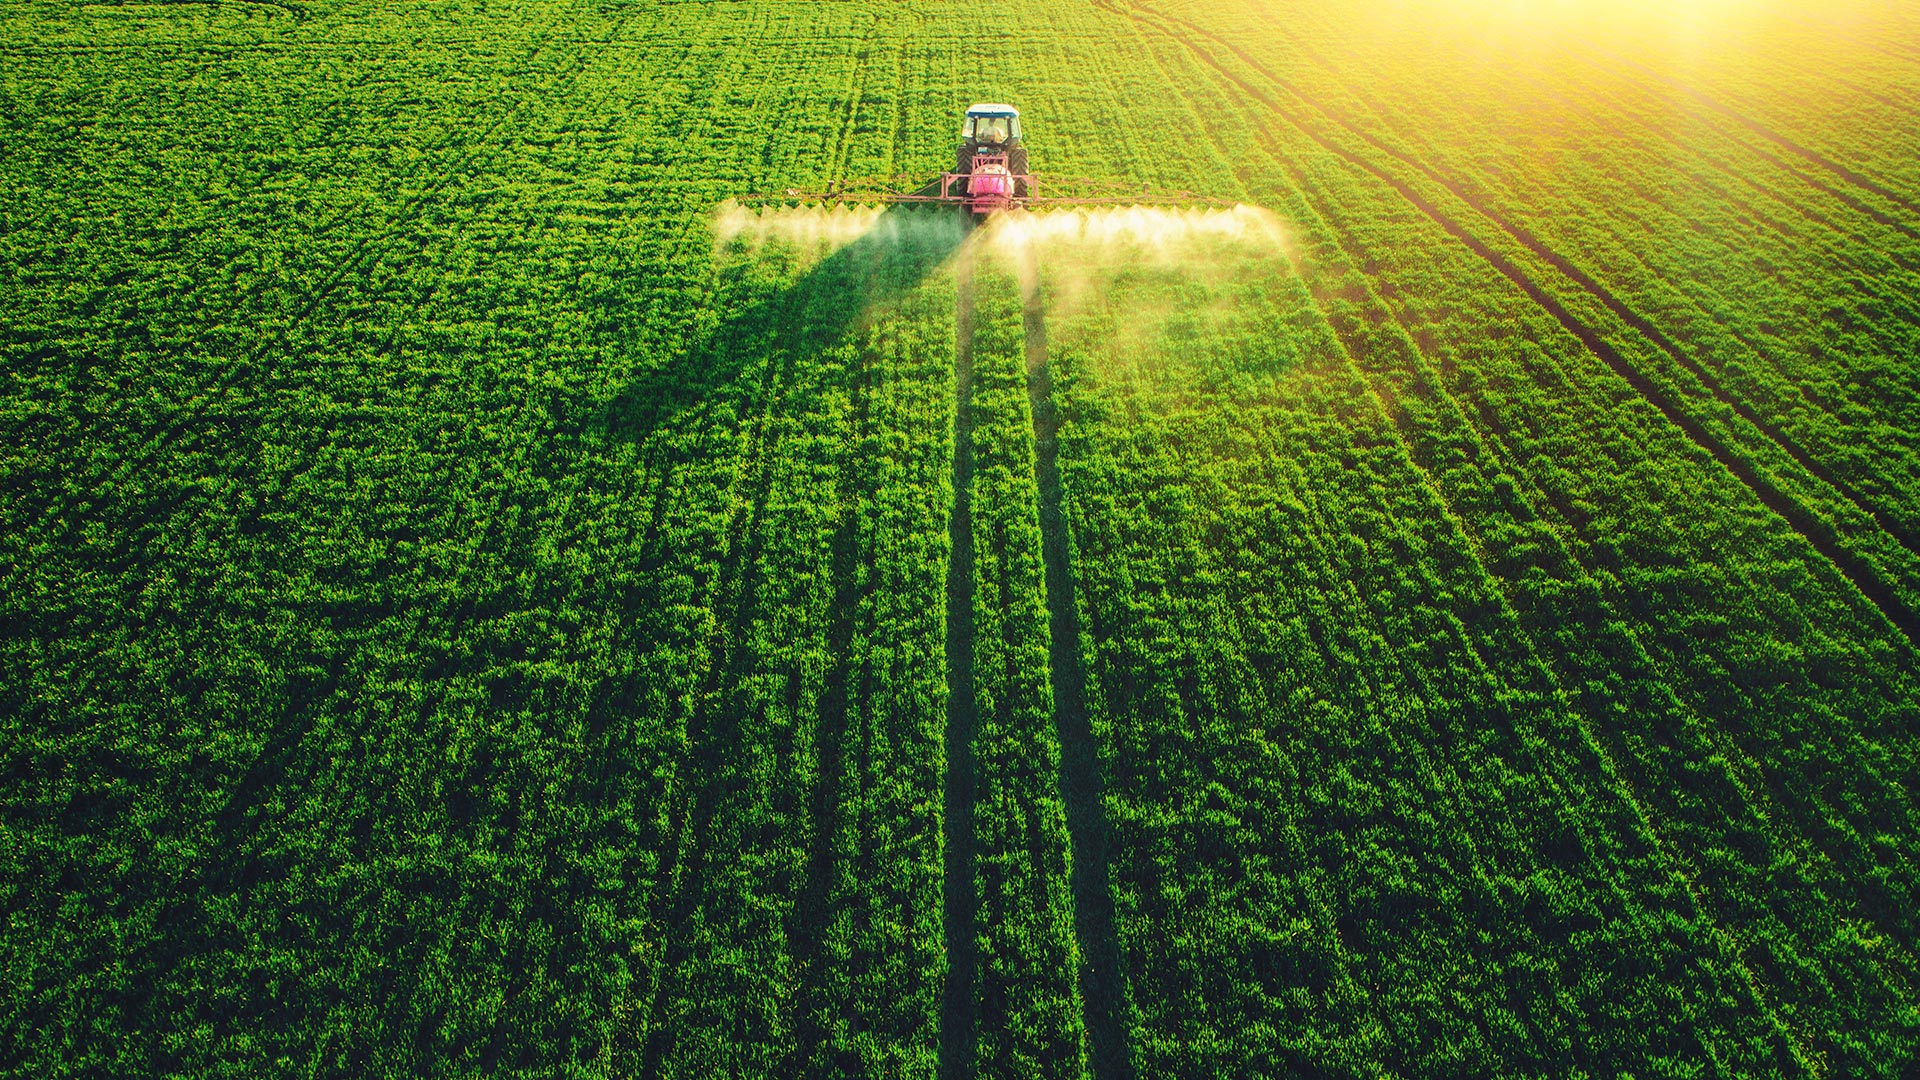 Aerial view of farming tractor spraying a field